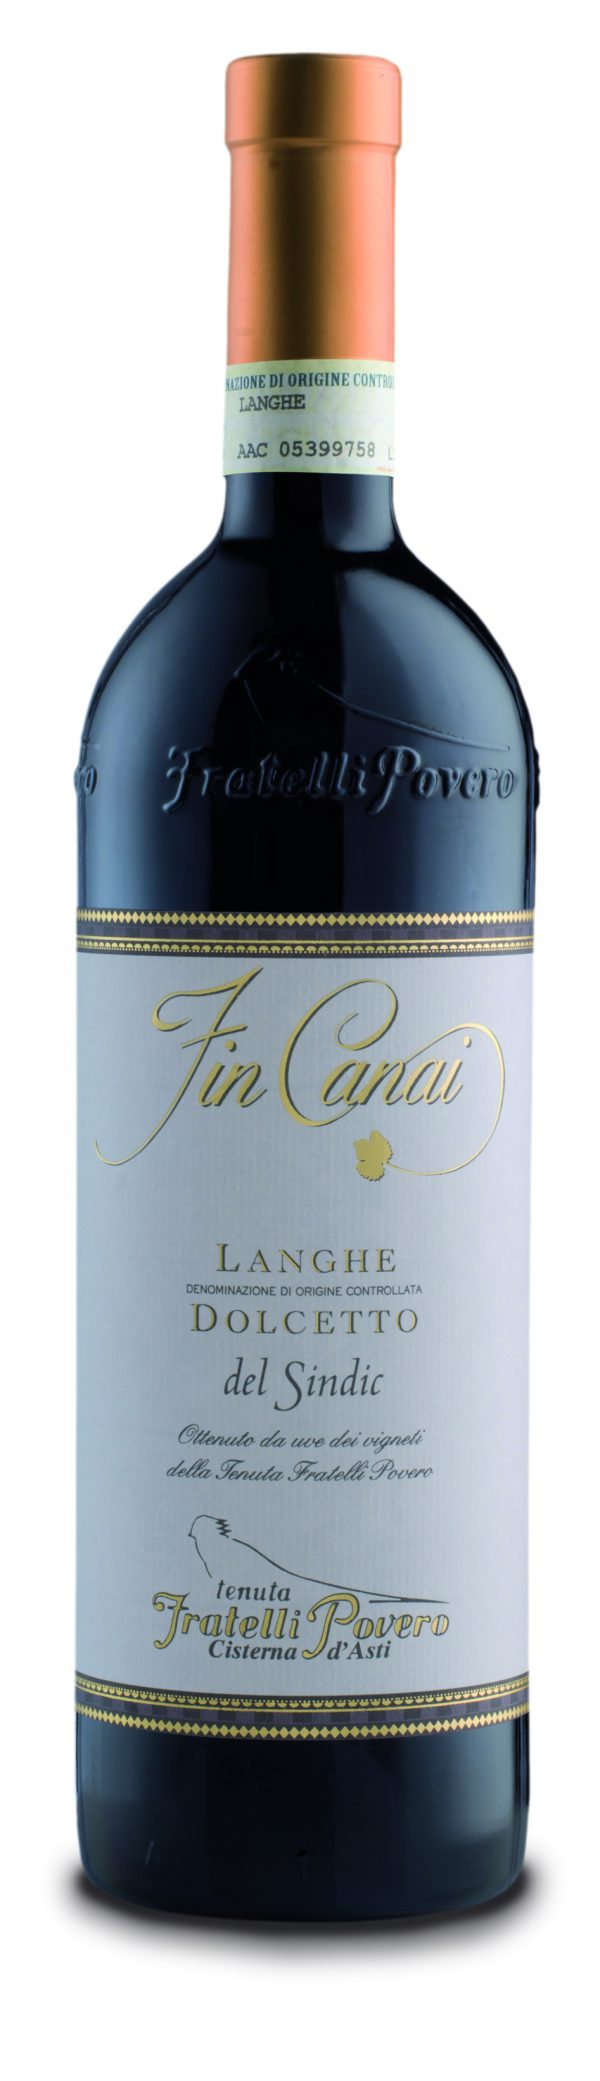 Fin Canai Langhe Dolcetto DOC 2019